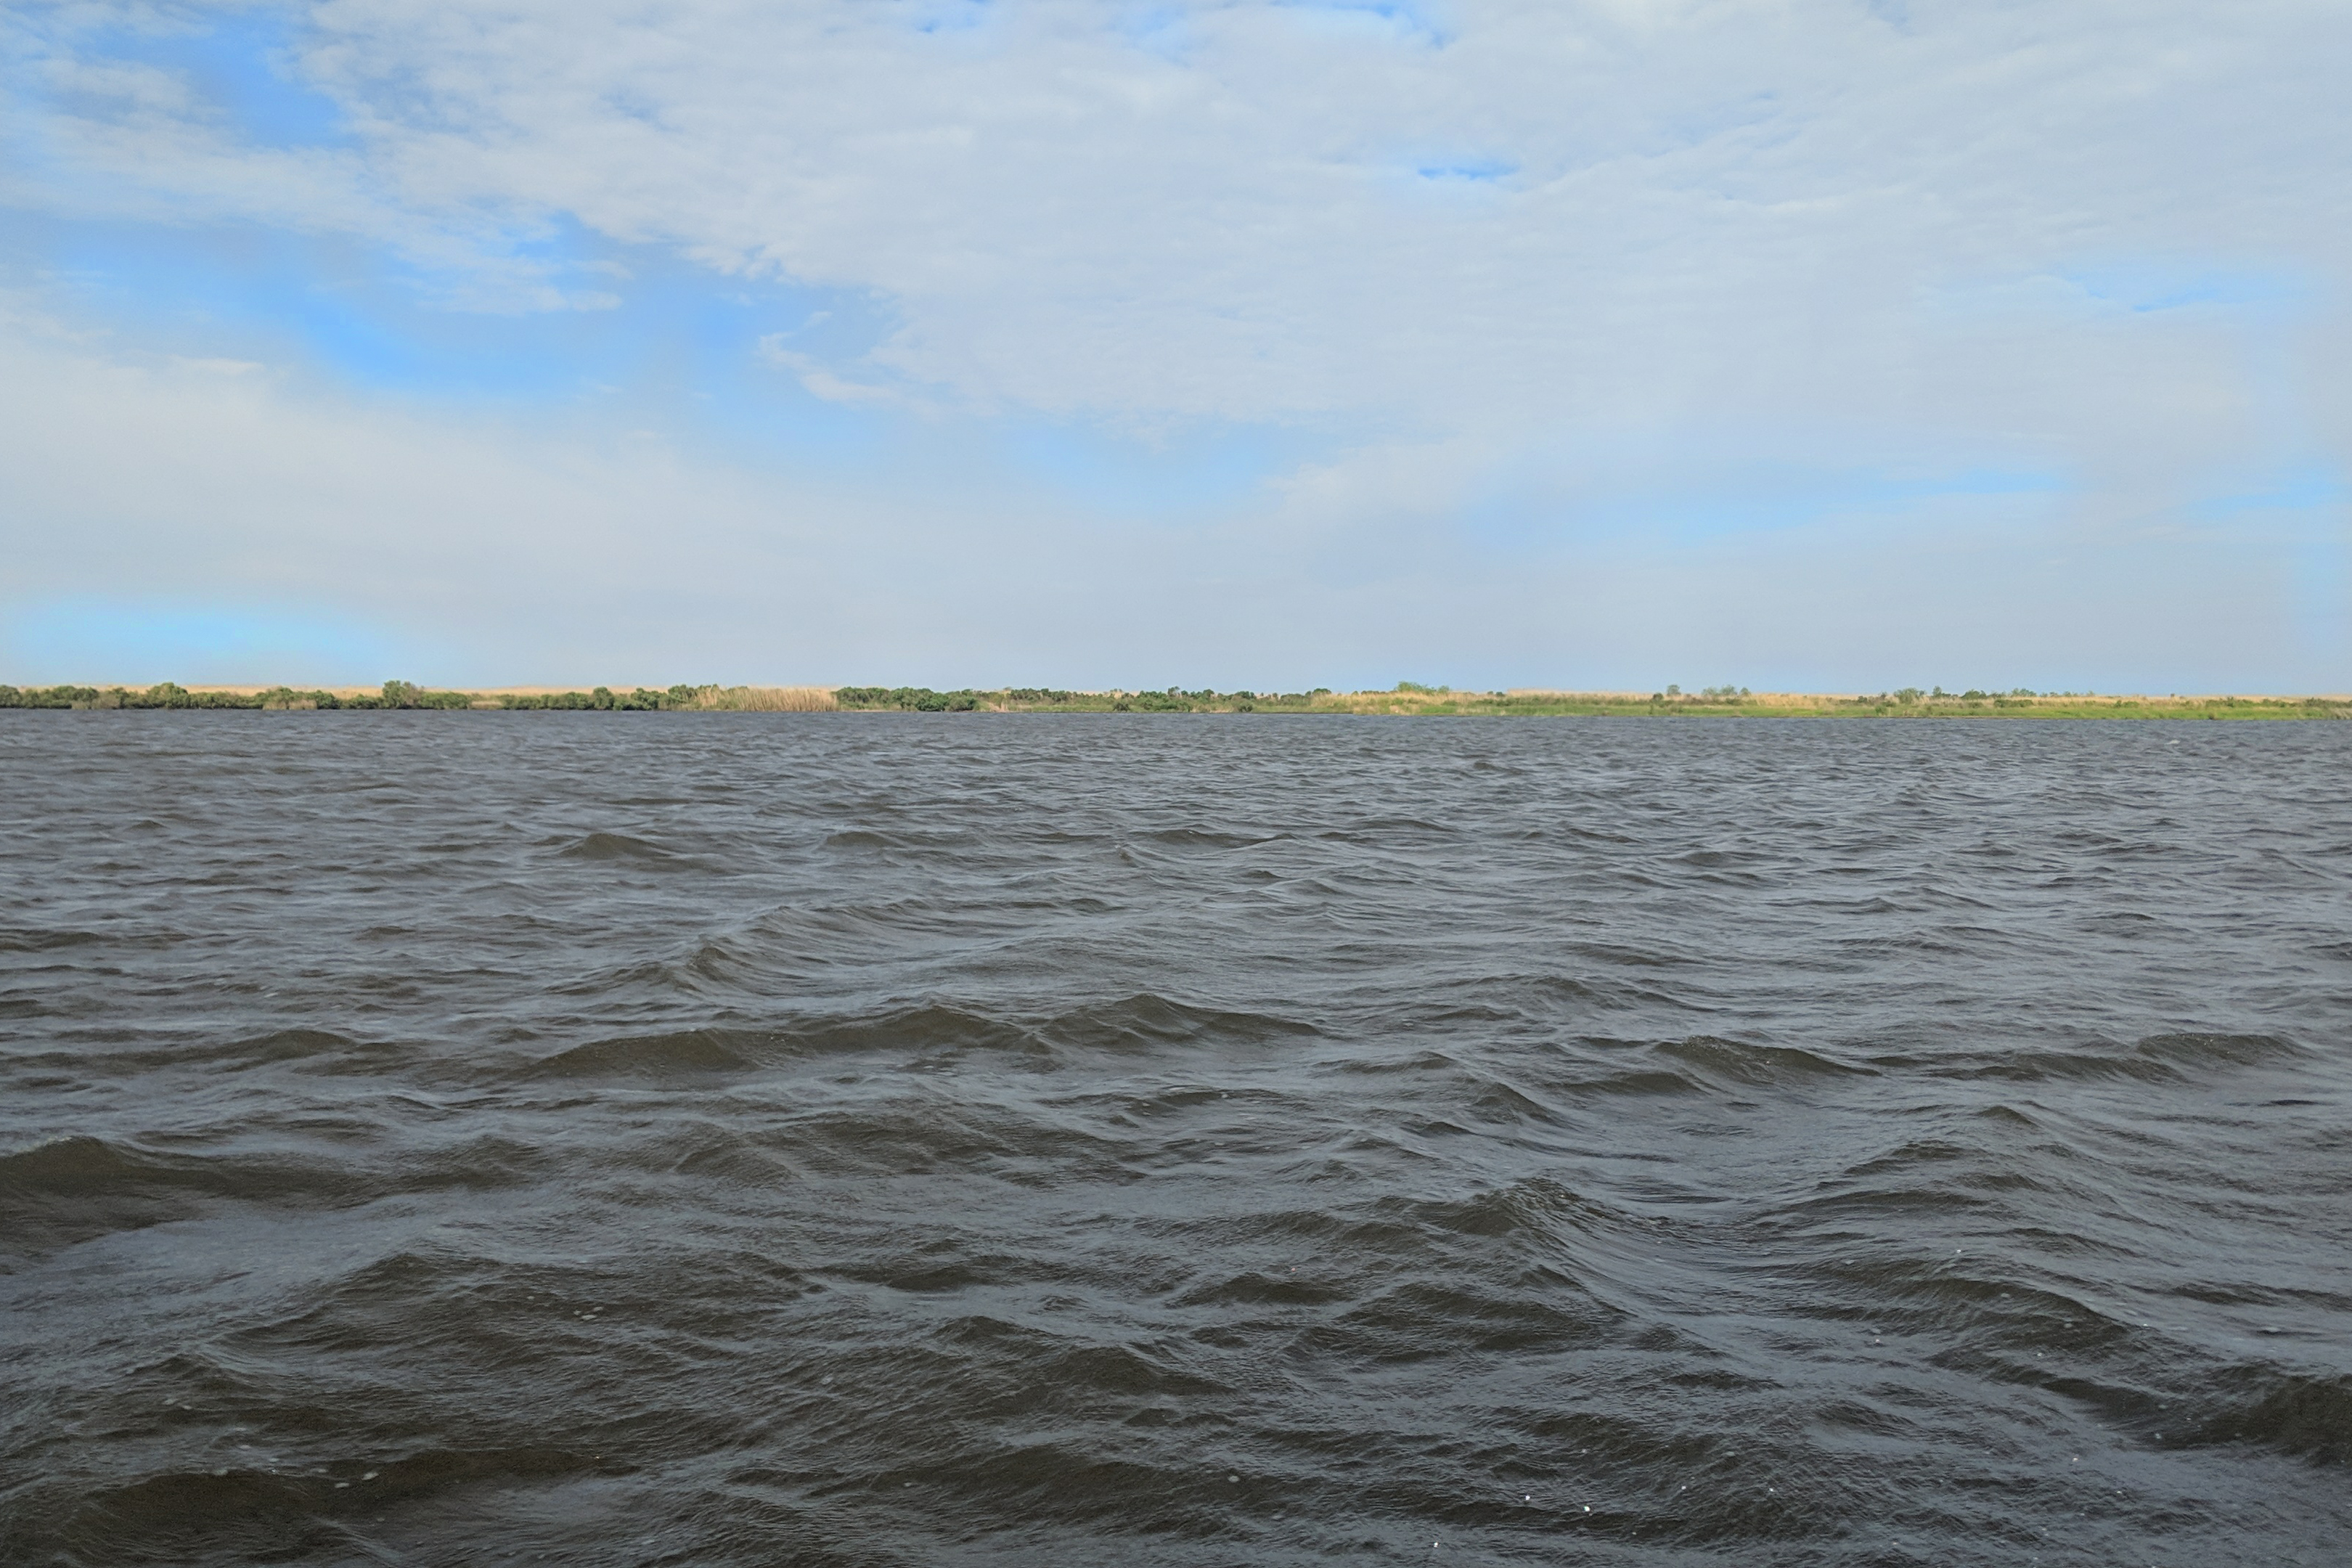 Open water of Barataria Bay with a strip of dunes and beach in the background.